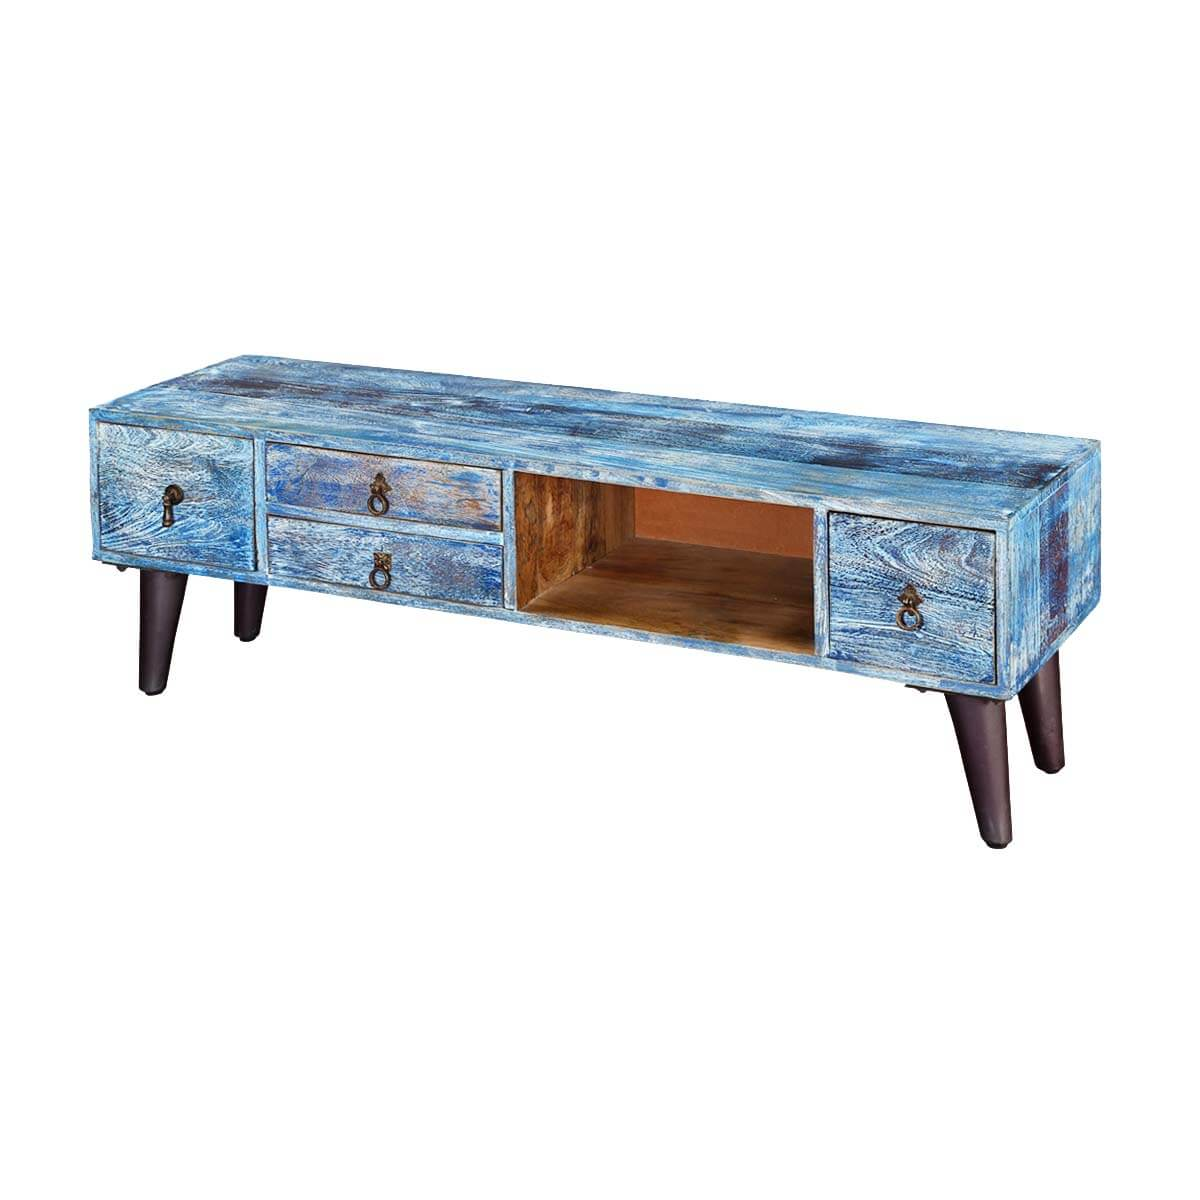 Turquoise Trail 51 Rustic 4-Drawer Open Storage Media Console Cabinet